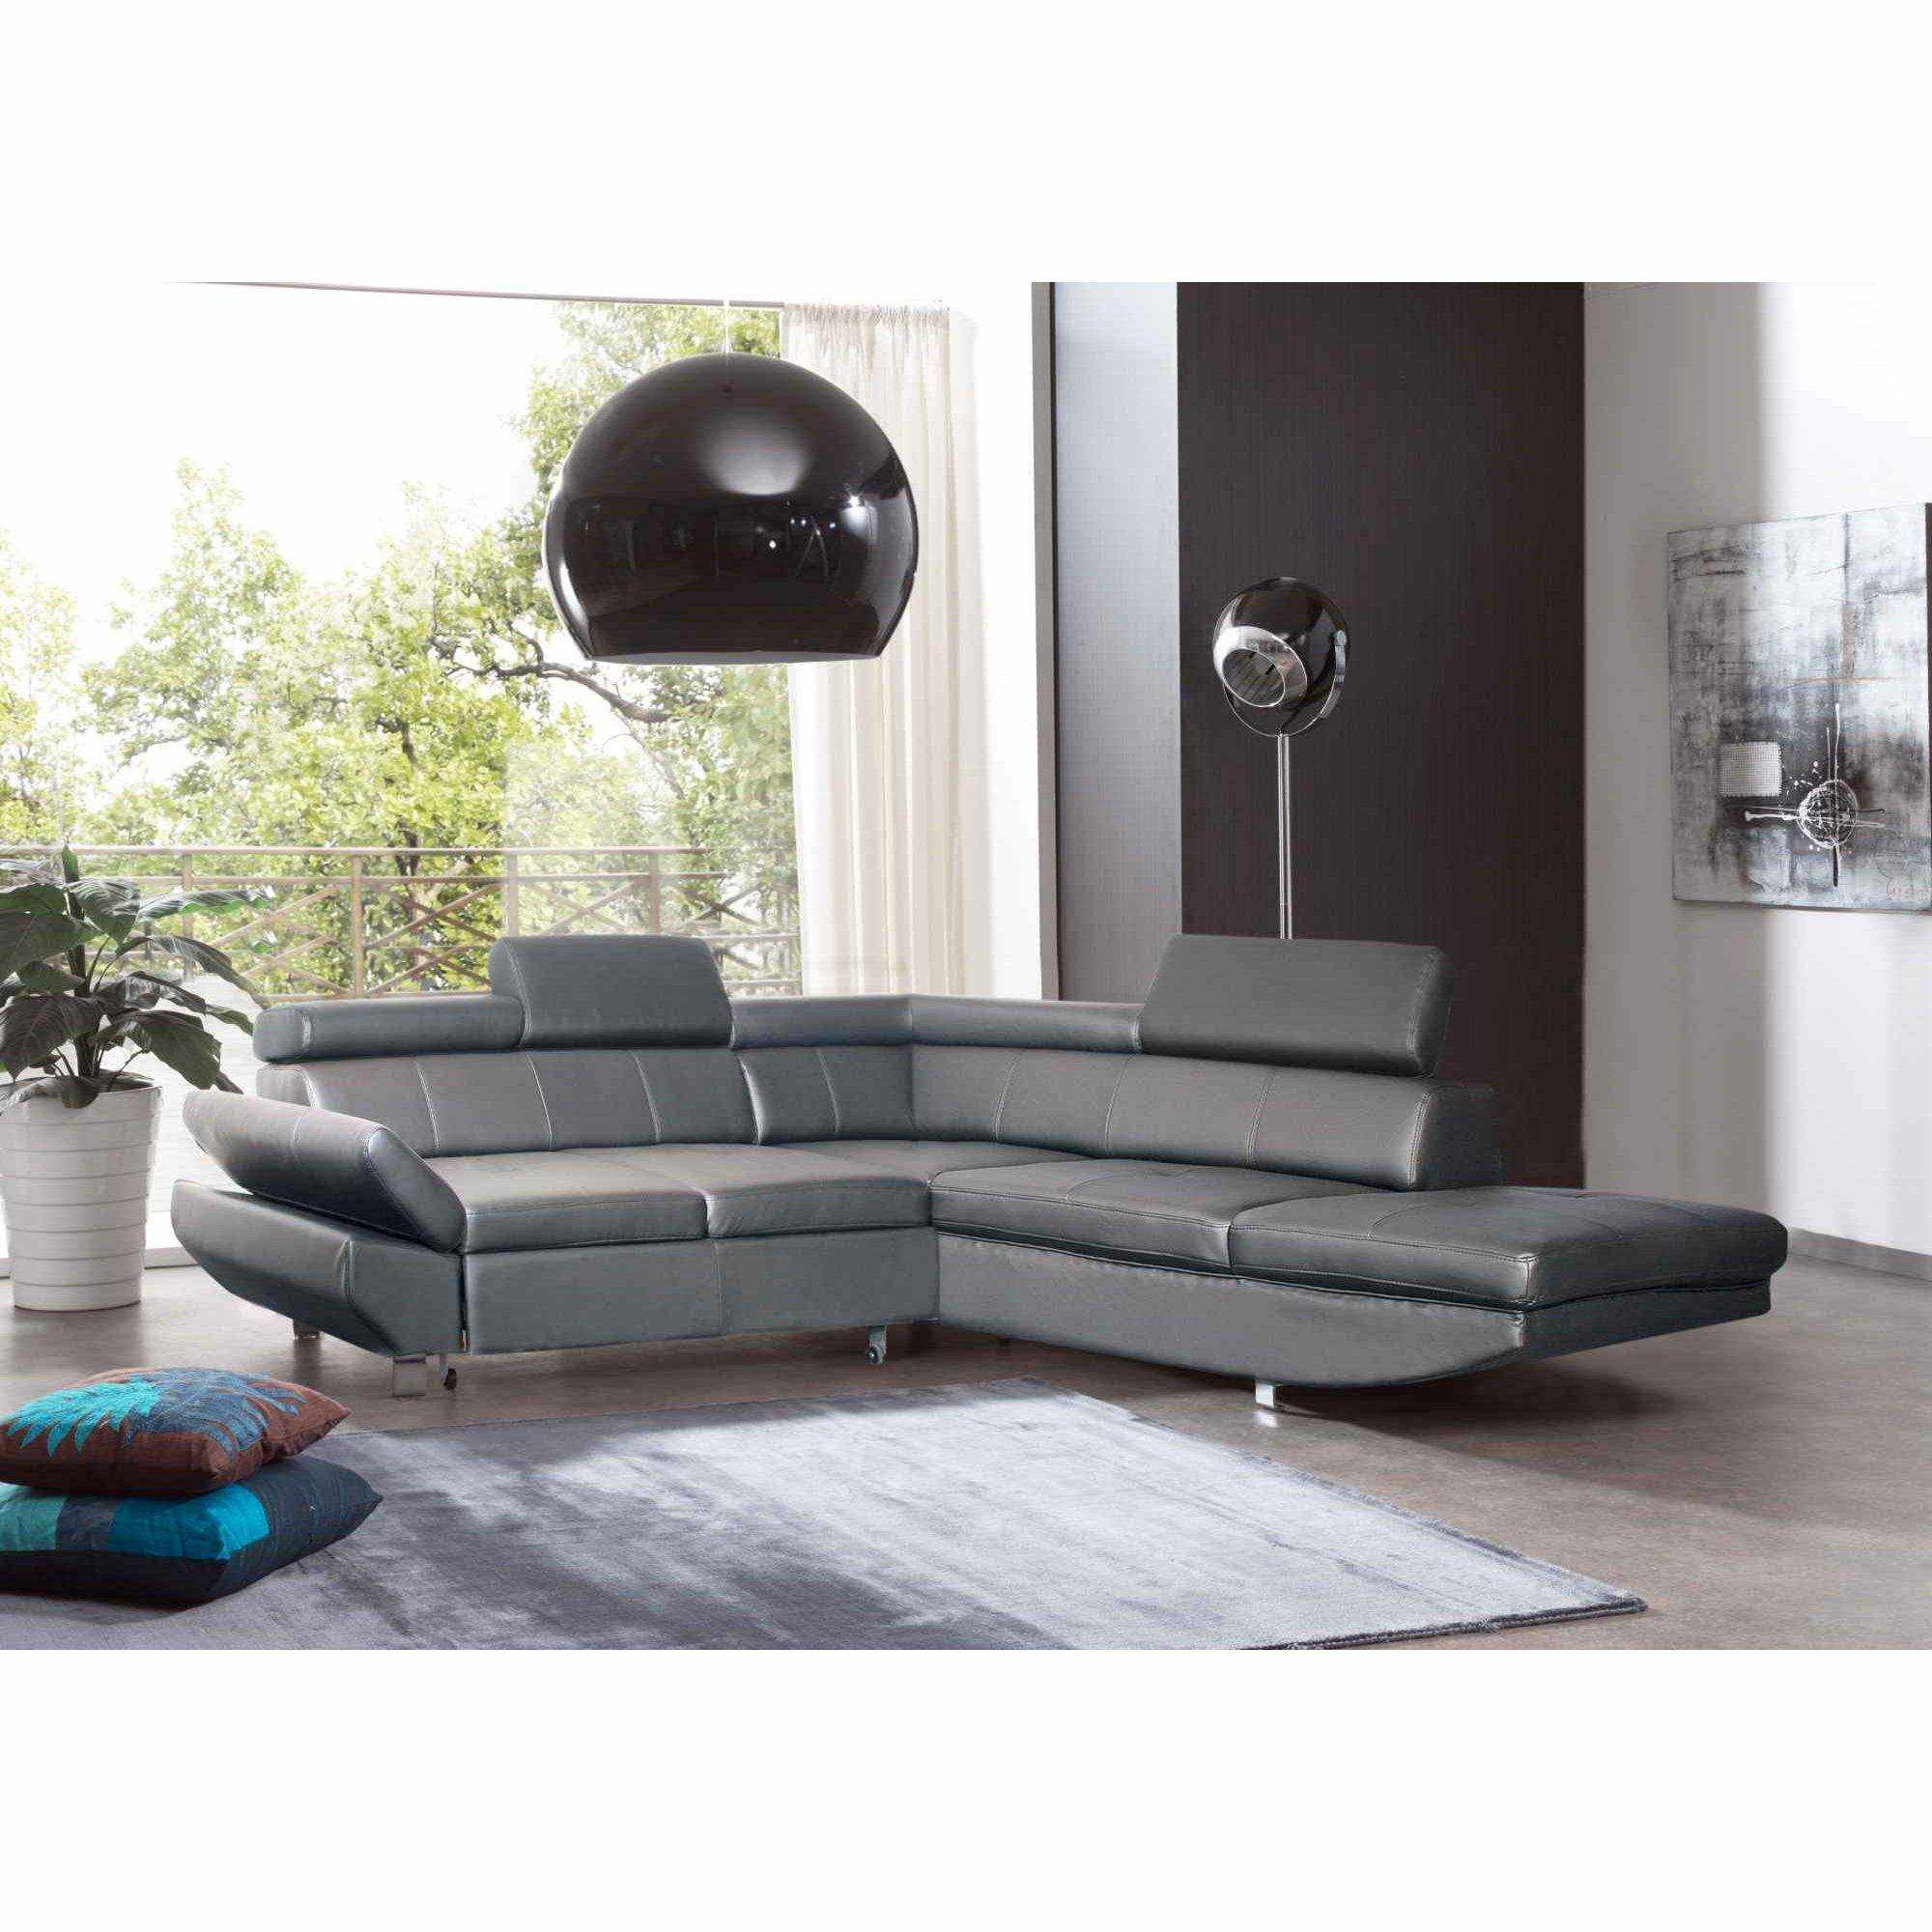 Deco in paris canape d angle design convertible gris - Canape angle but gris ...